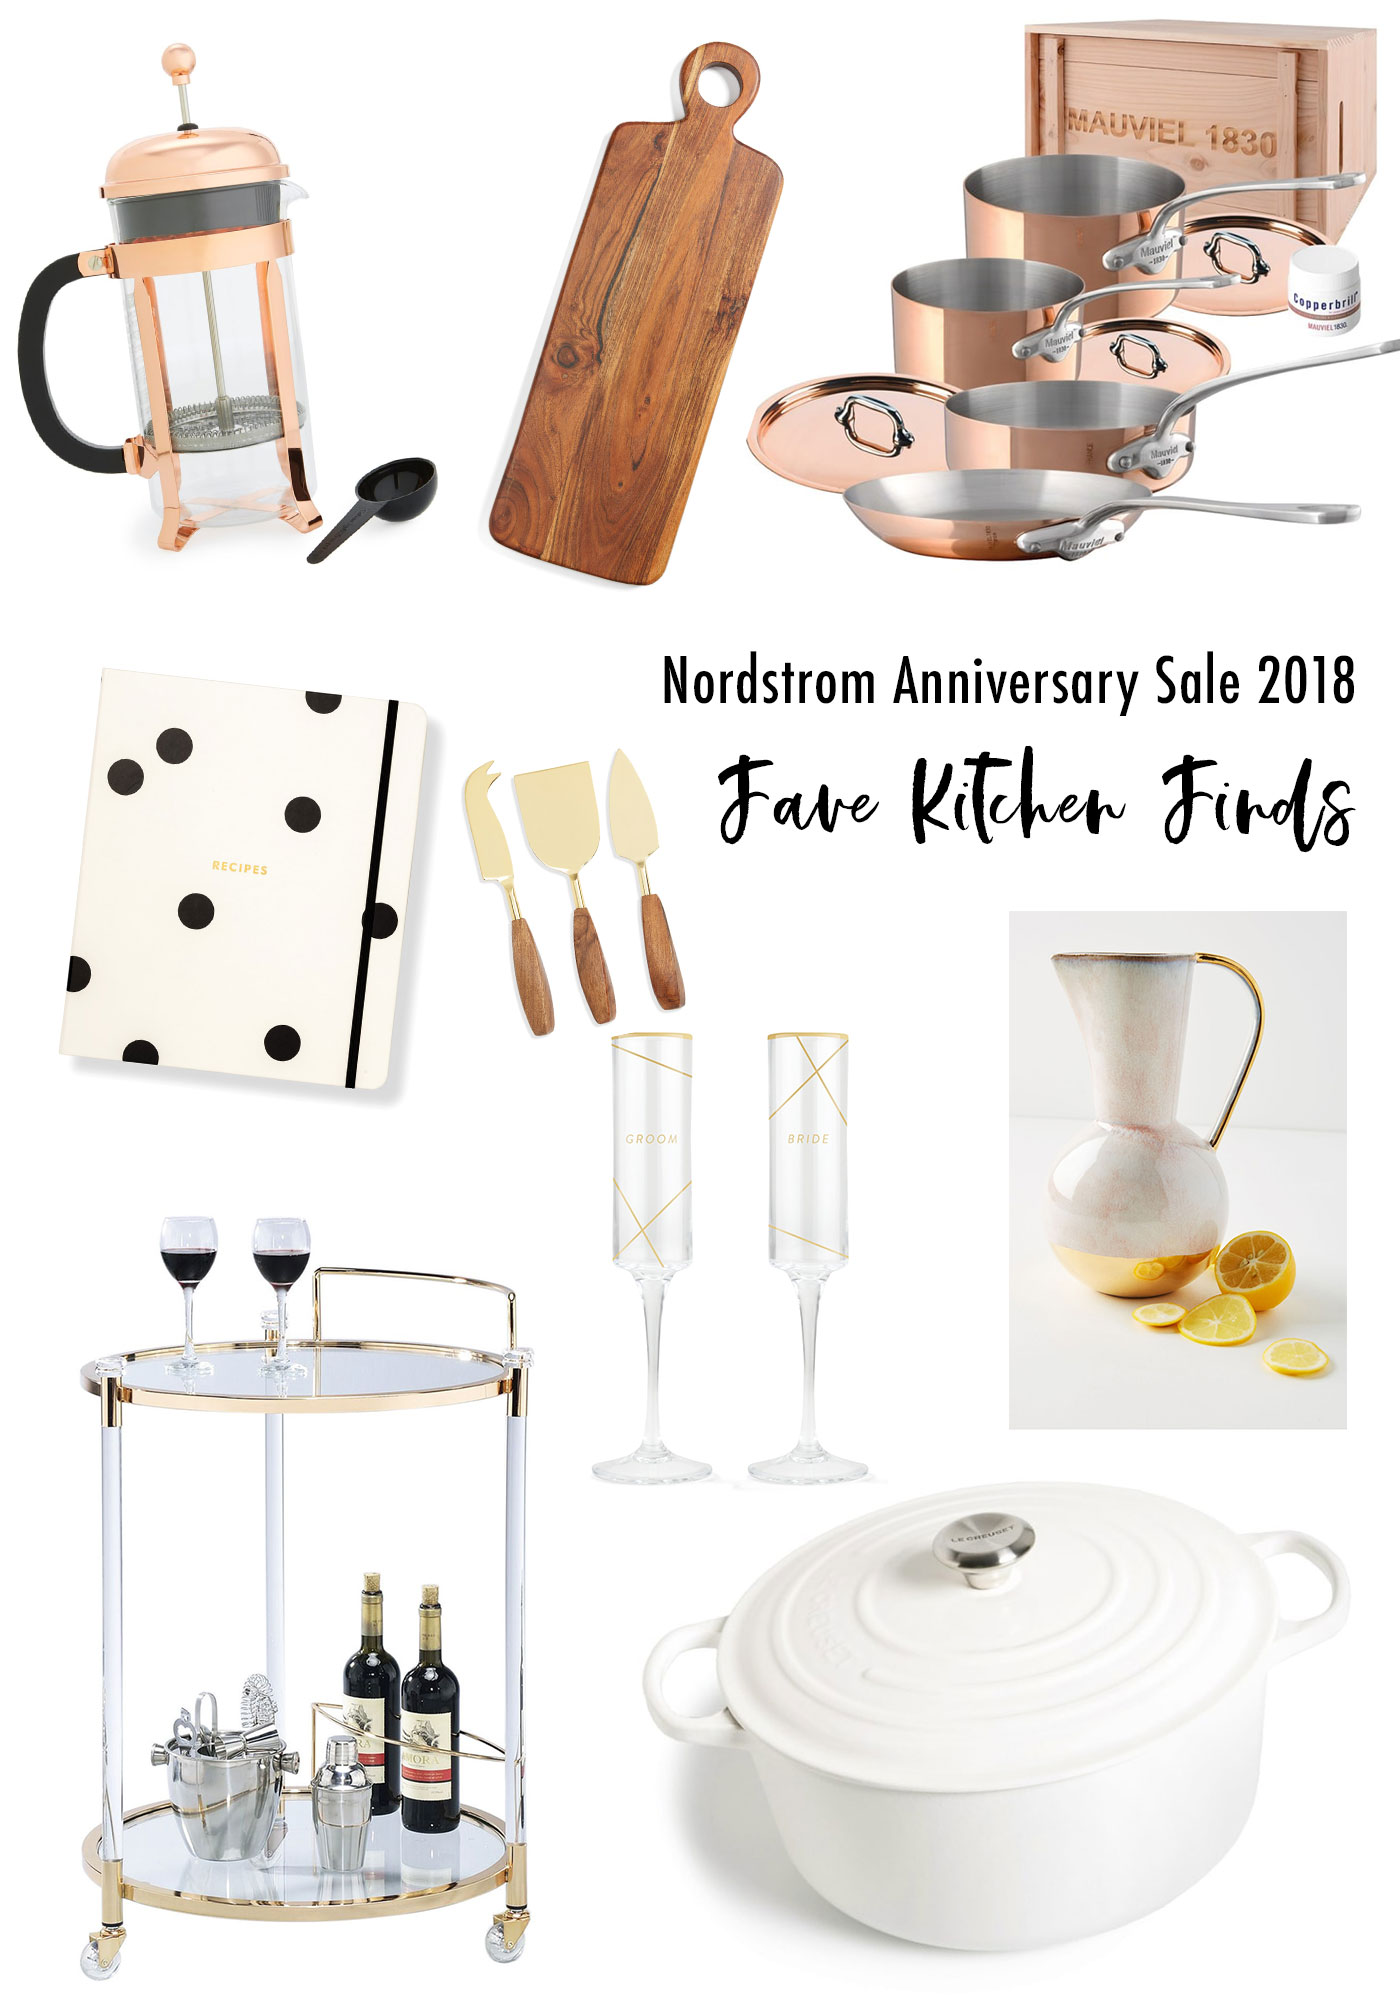 Top Kitchen Picks for the Nordstrom Anniversary Sale 2018